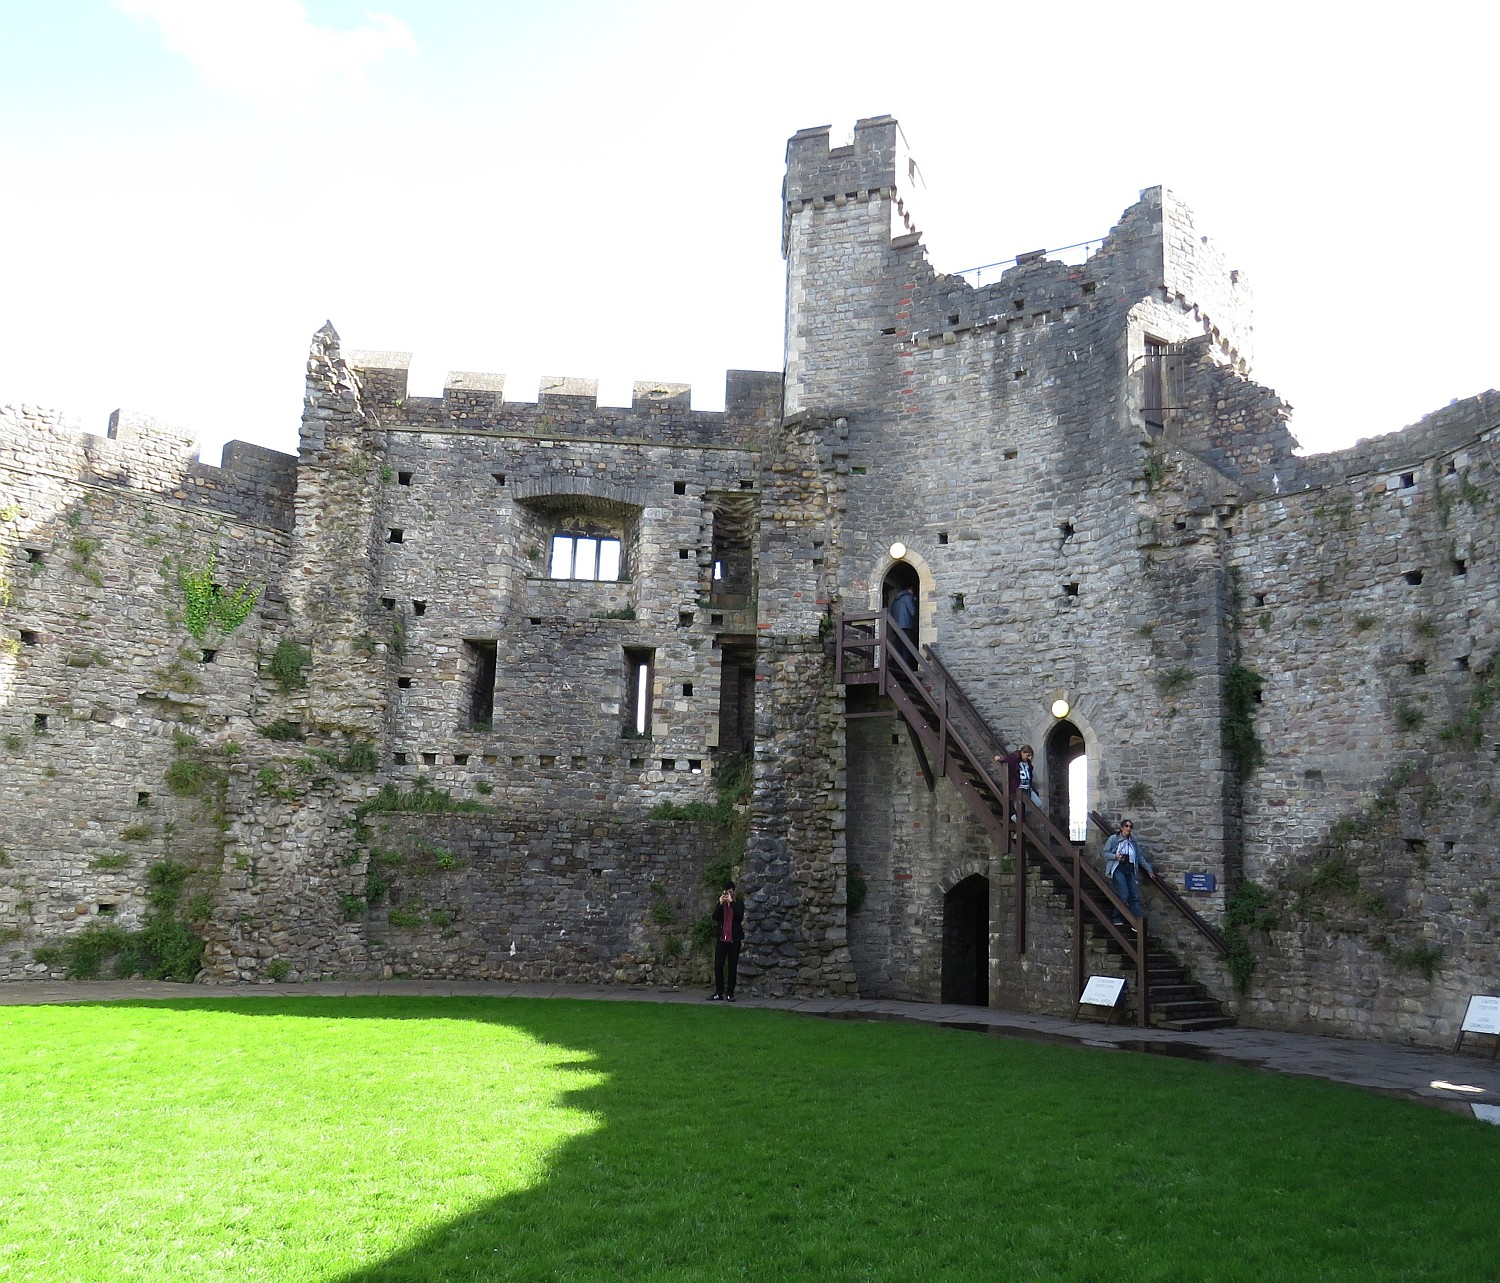 Interior of the Keep